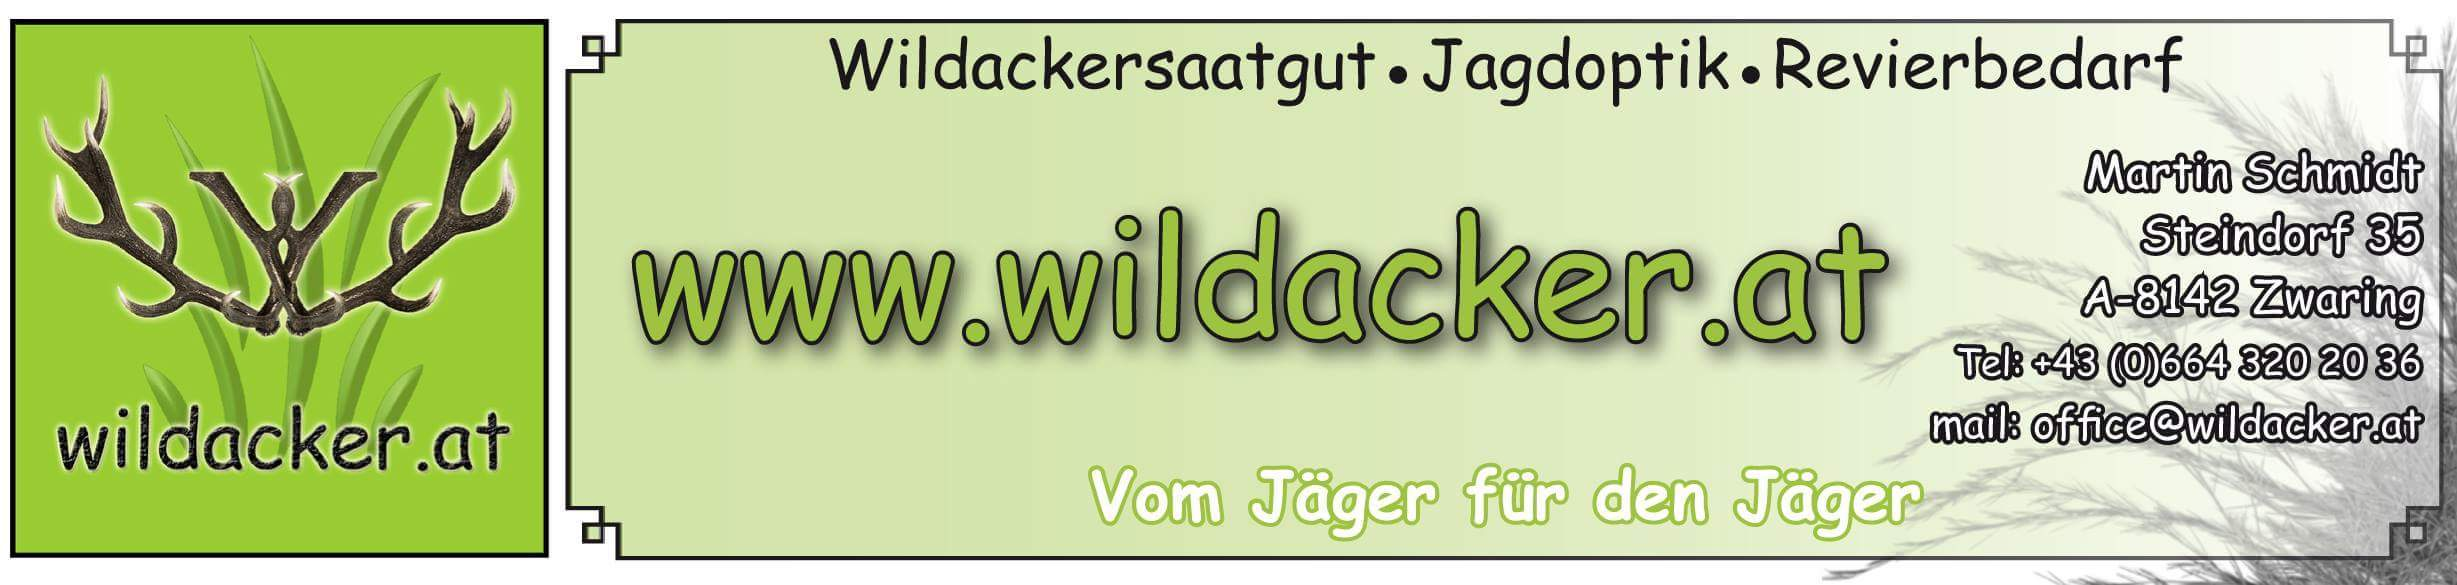 Wildacker-at